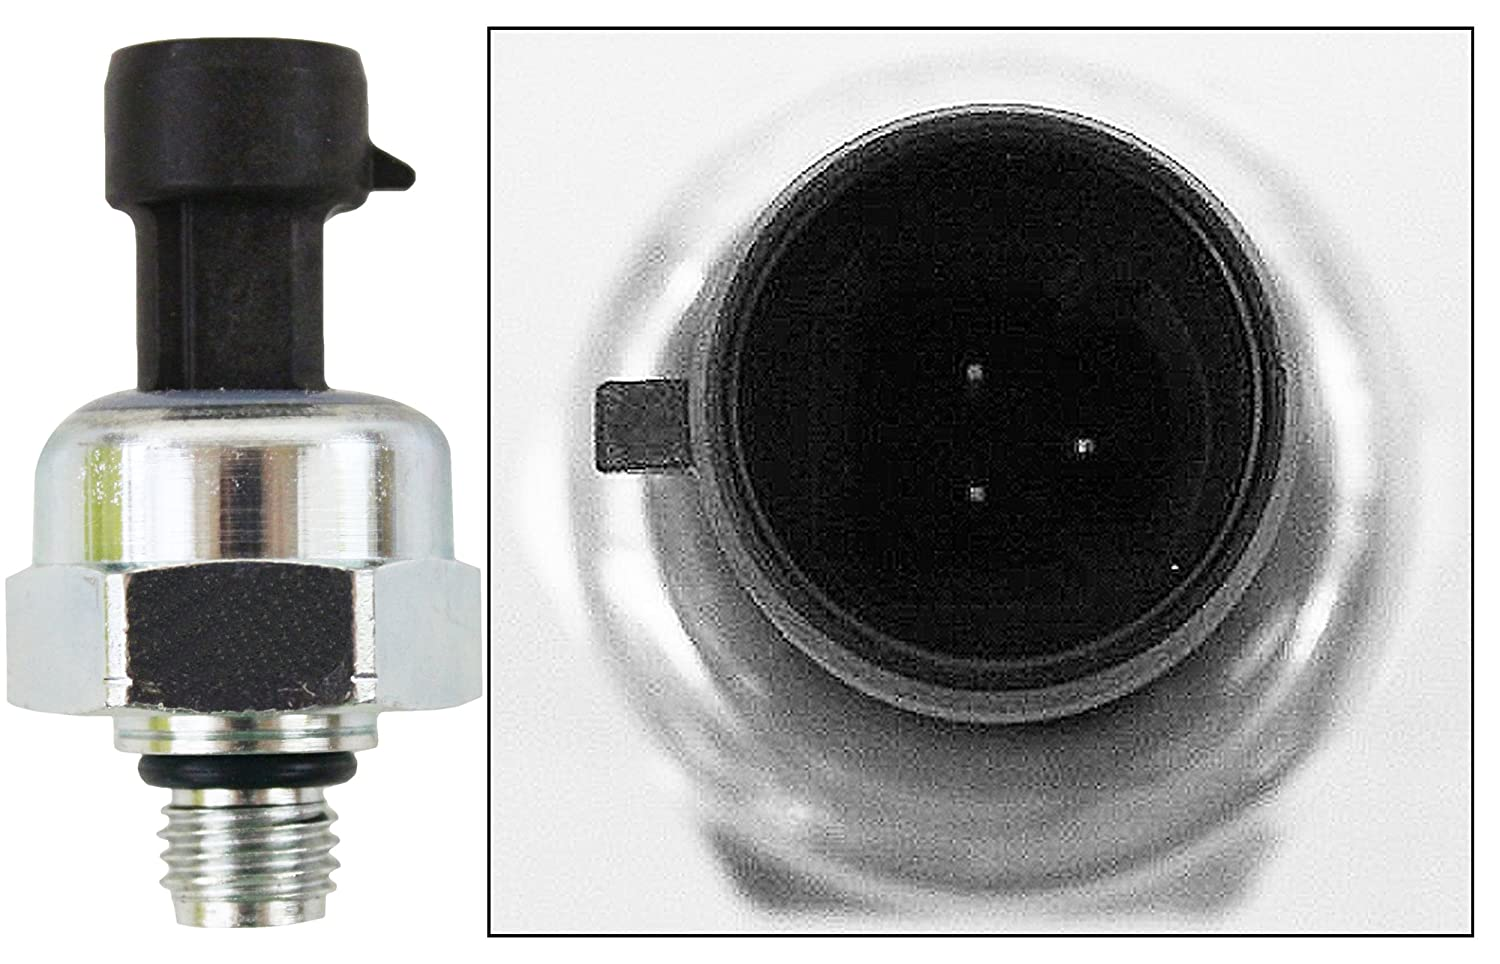 APDTY 112842 ICP Fuel Injector Injection Pressure Sensor Fits 2003-2004 Ford or International Trucks With 6.0L Diesel Engine (Replaces Ford 3C3Z9F838EA, 1845274C92, ICP103, AP63407) NCOREDSHKF5488